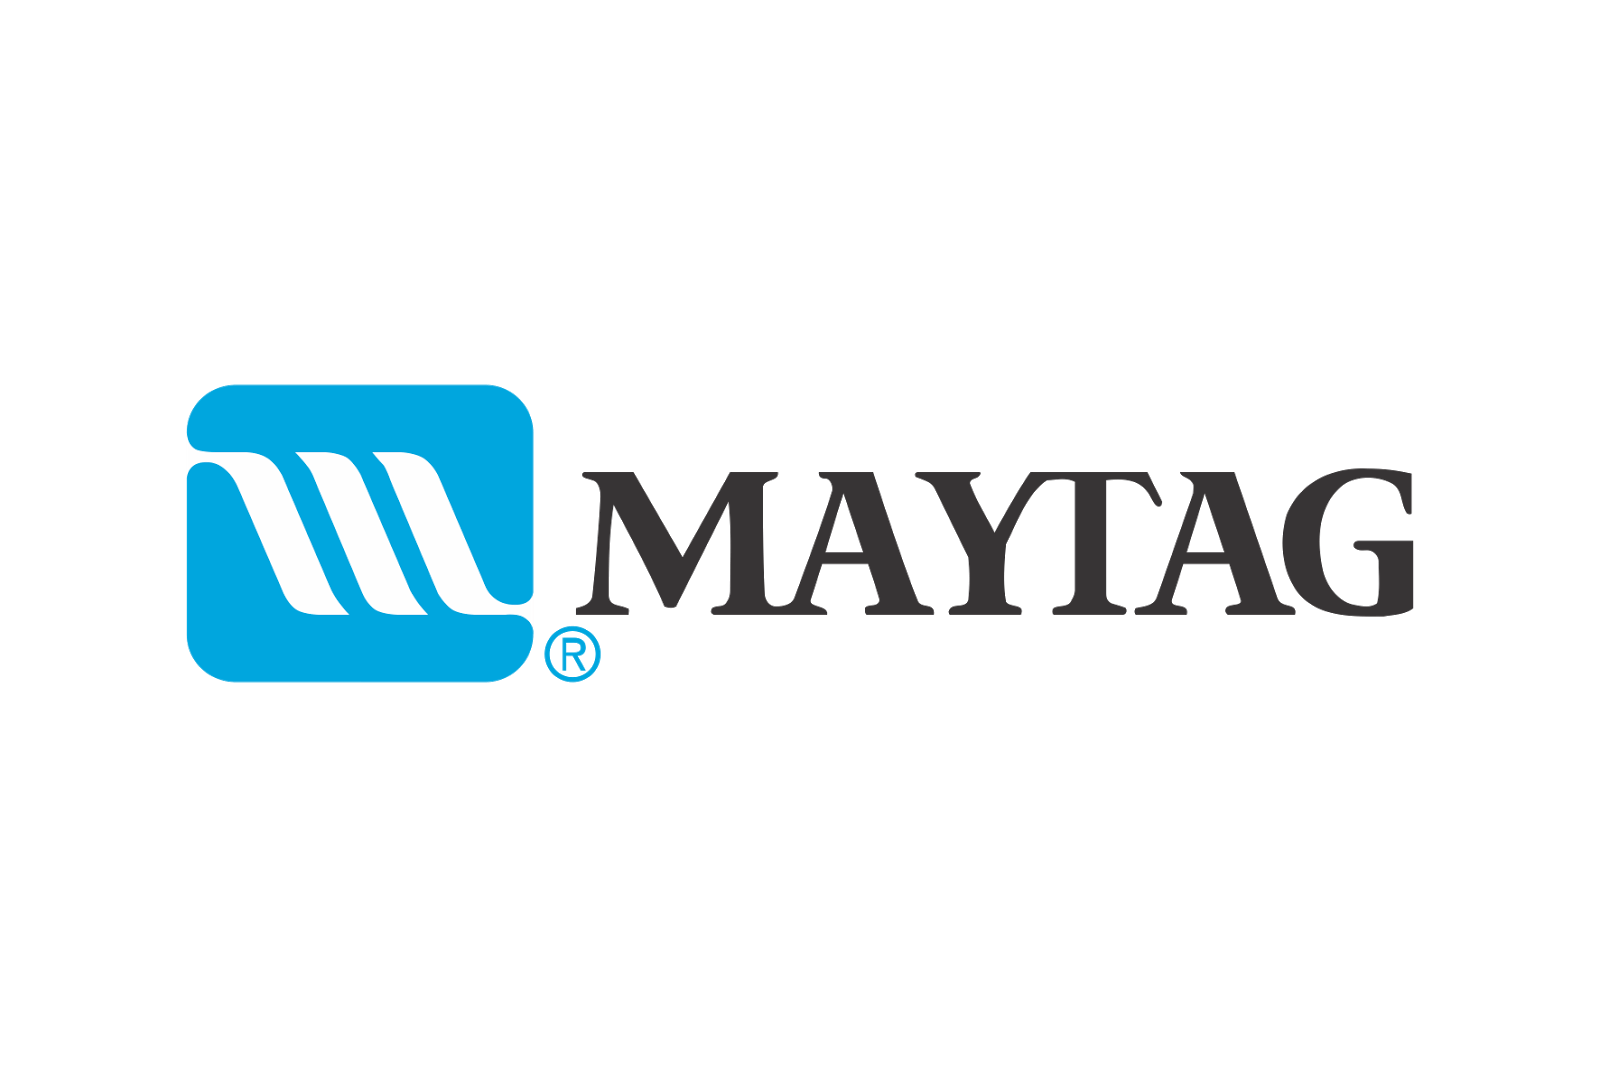 Maytag Logo - Image - Logo Maytag.png | Logopedia | FANDOM powered by Wikia